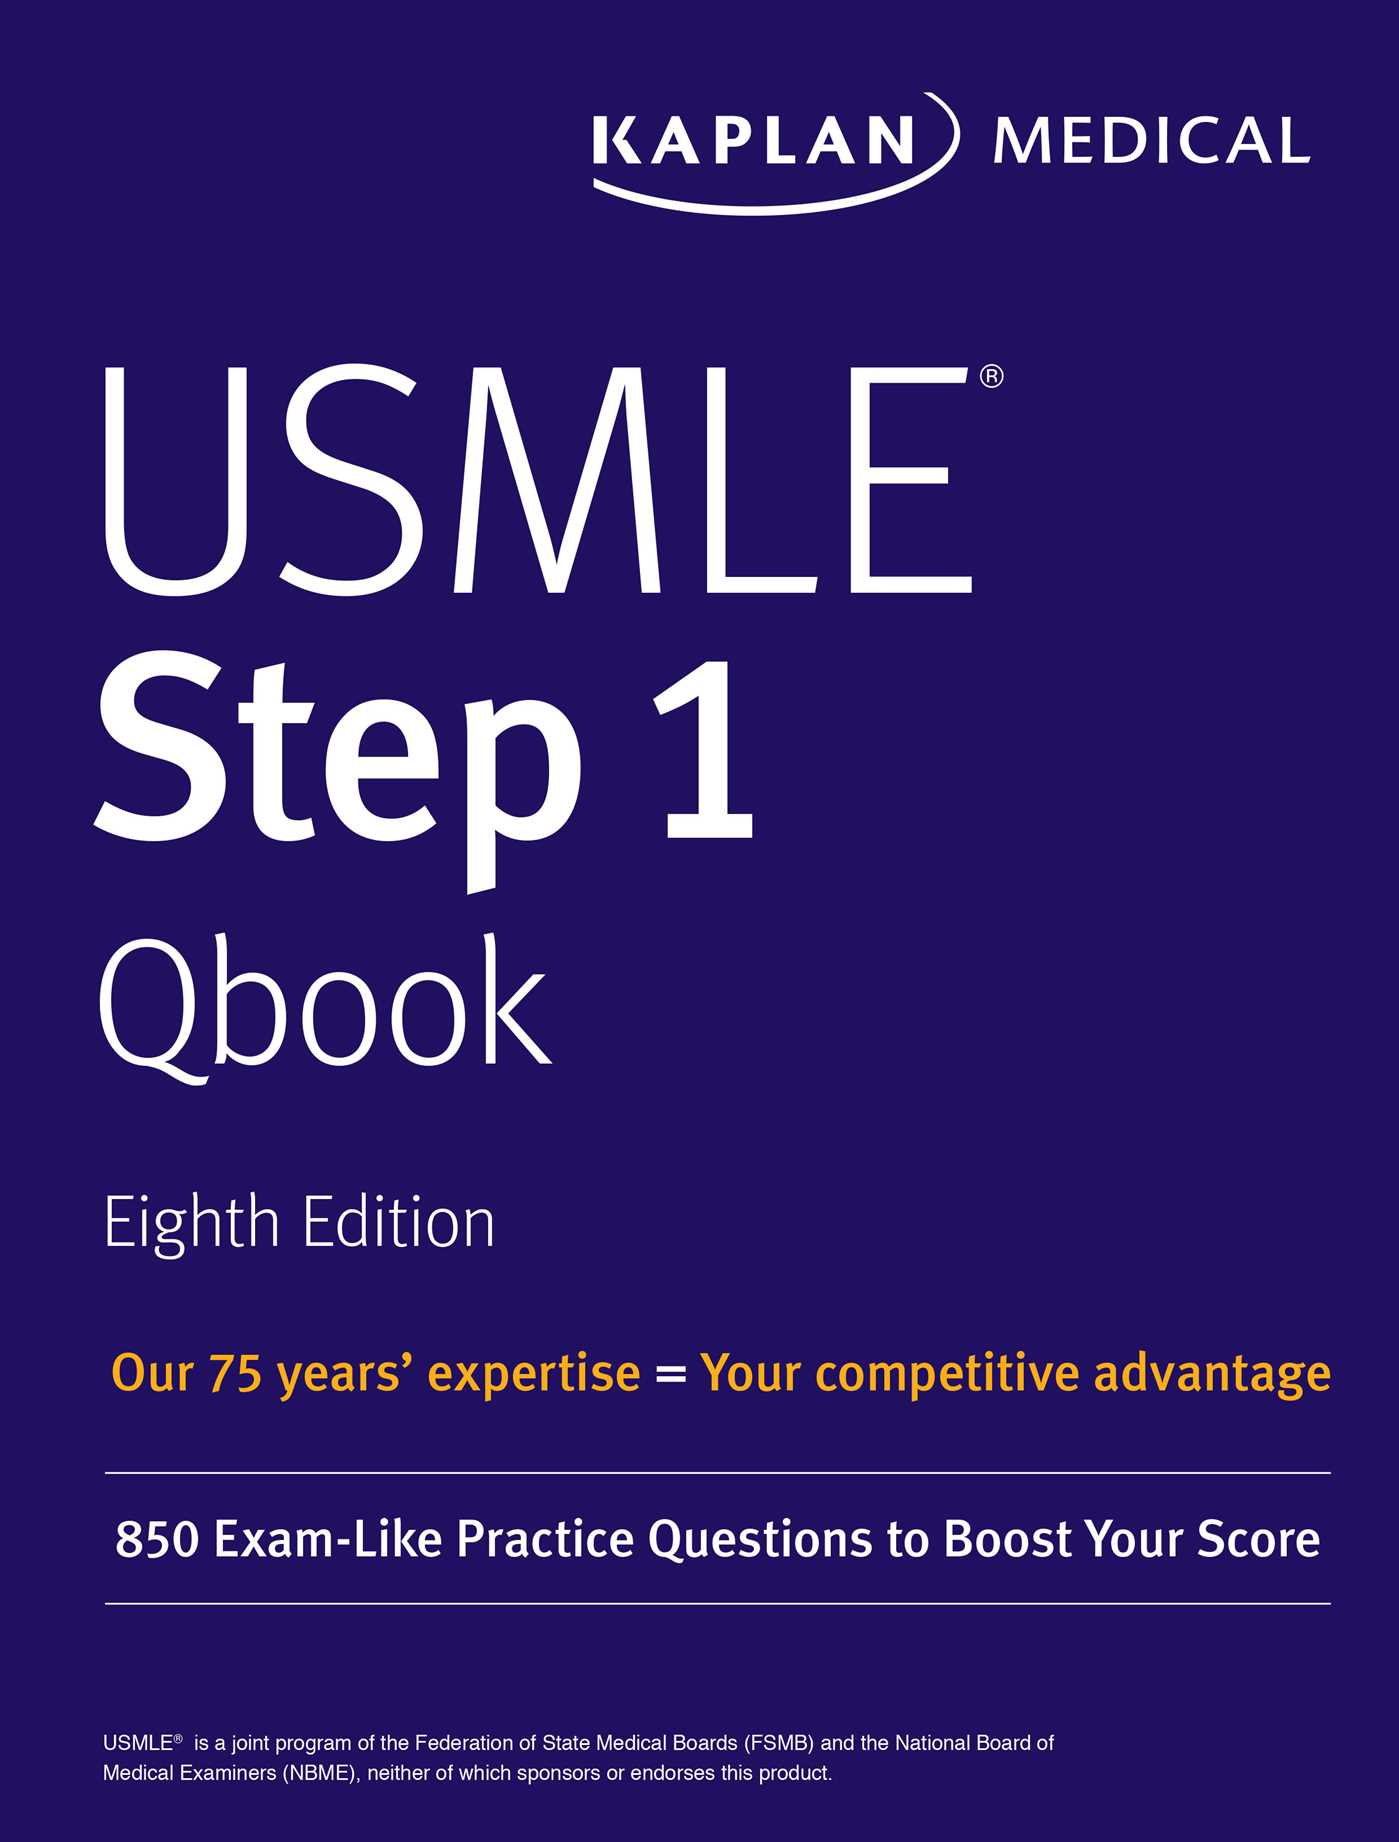 USMLE Step 1 Qbook | Book by Kaplan Medical | Official Publisher ...